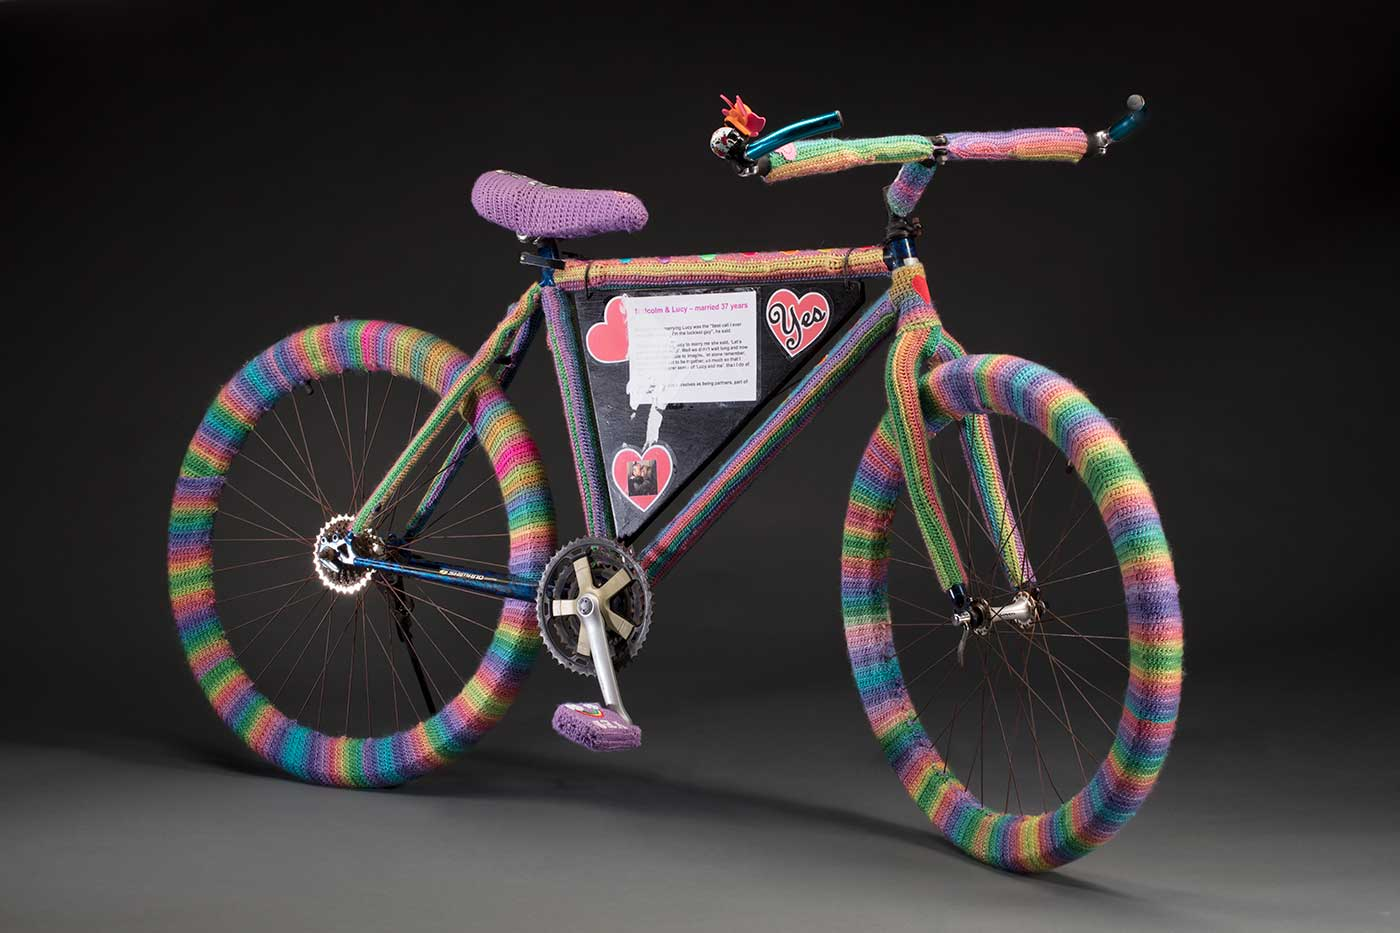 A bicycle covered with woollen crochet that consist of multi-coloured striped wheels, a purple seat and two purple peddles.